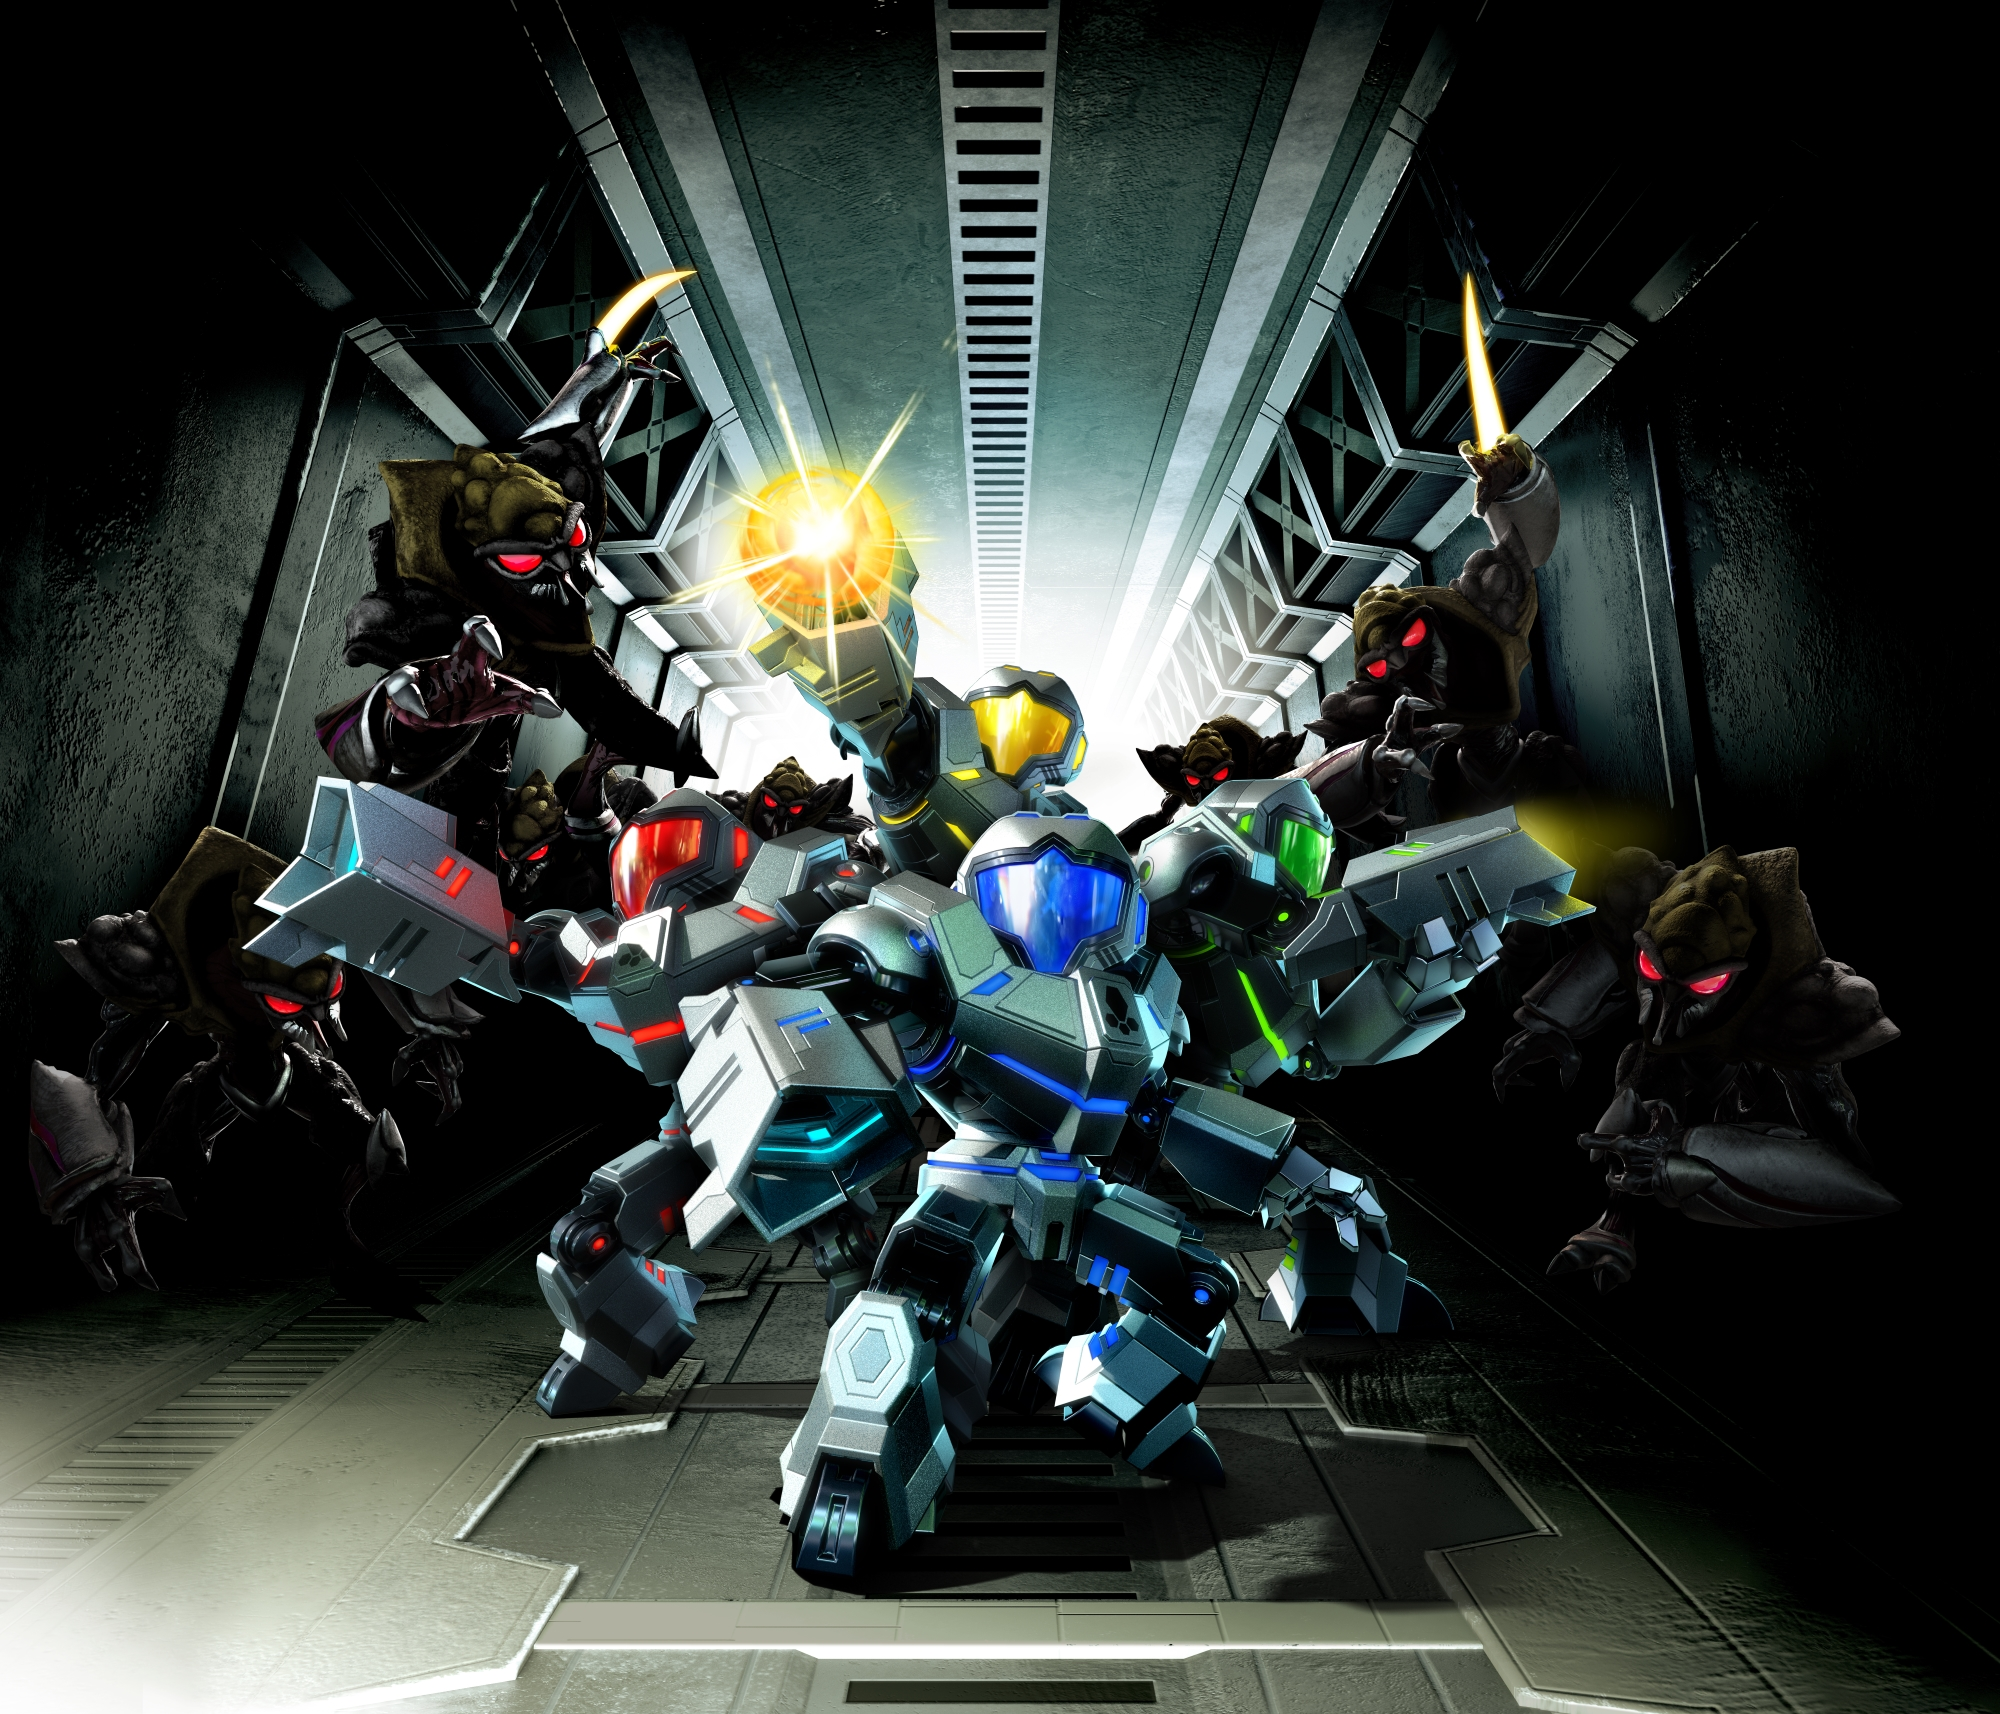 Metroid Prime: Federation Force review – unhappy birthday